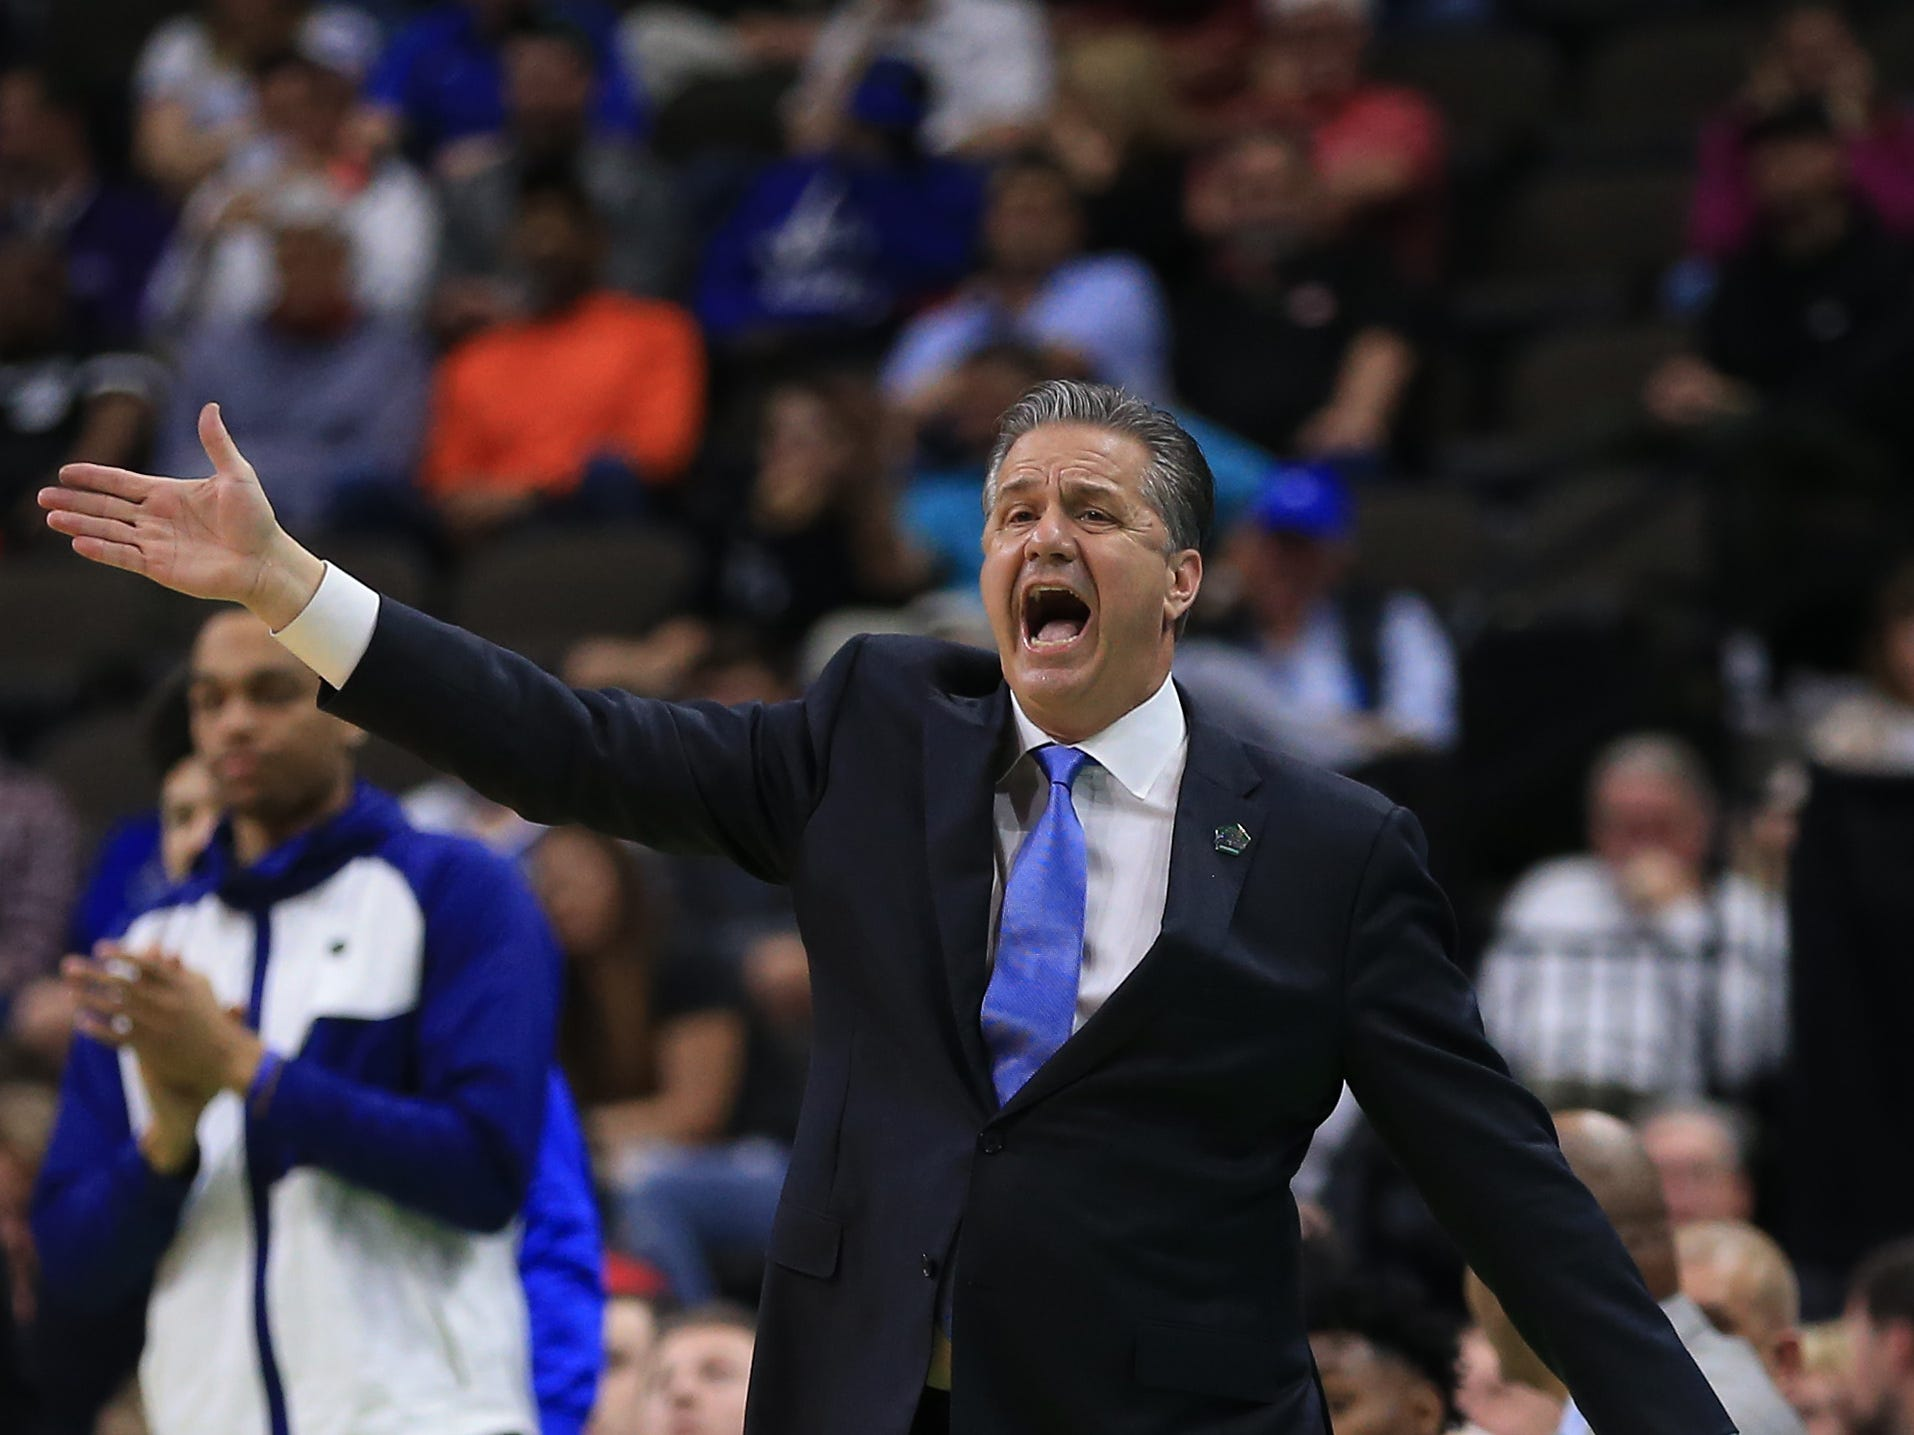 Mar 21, 2019; Jacksonville, FL, USA; Kentucky Wildcats head coach John Calipari reacts on the sidelines against the Abilene Christian Wildcats during the first half in the first round of the 2019 NCAA Tournament at Jacksonville Veterans Memorial Arena. Mandatory Credit: Matt Stamey-USA TODAY Sports